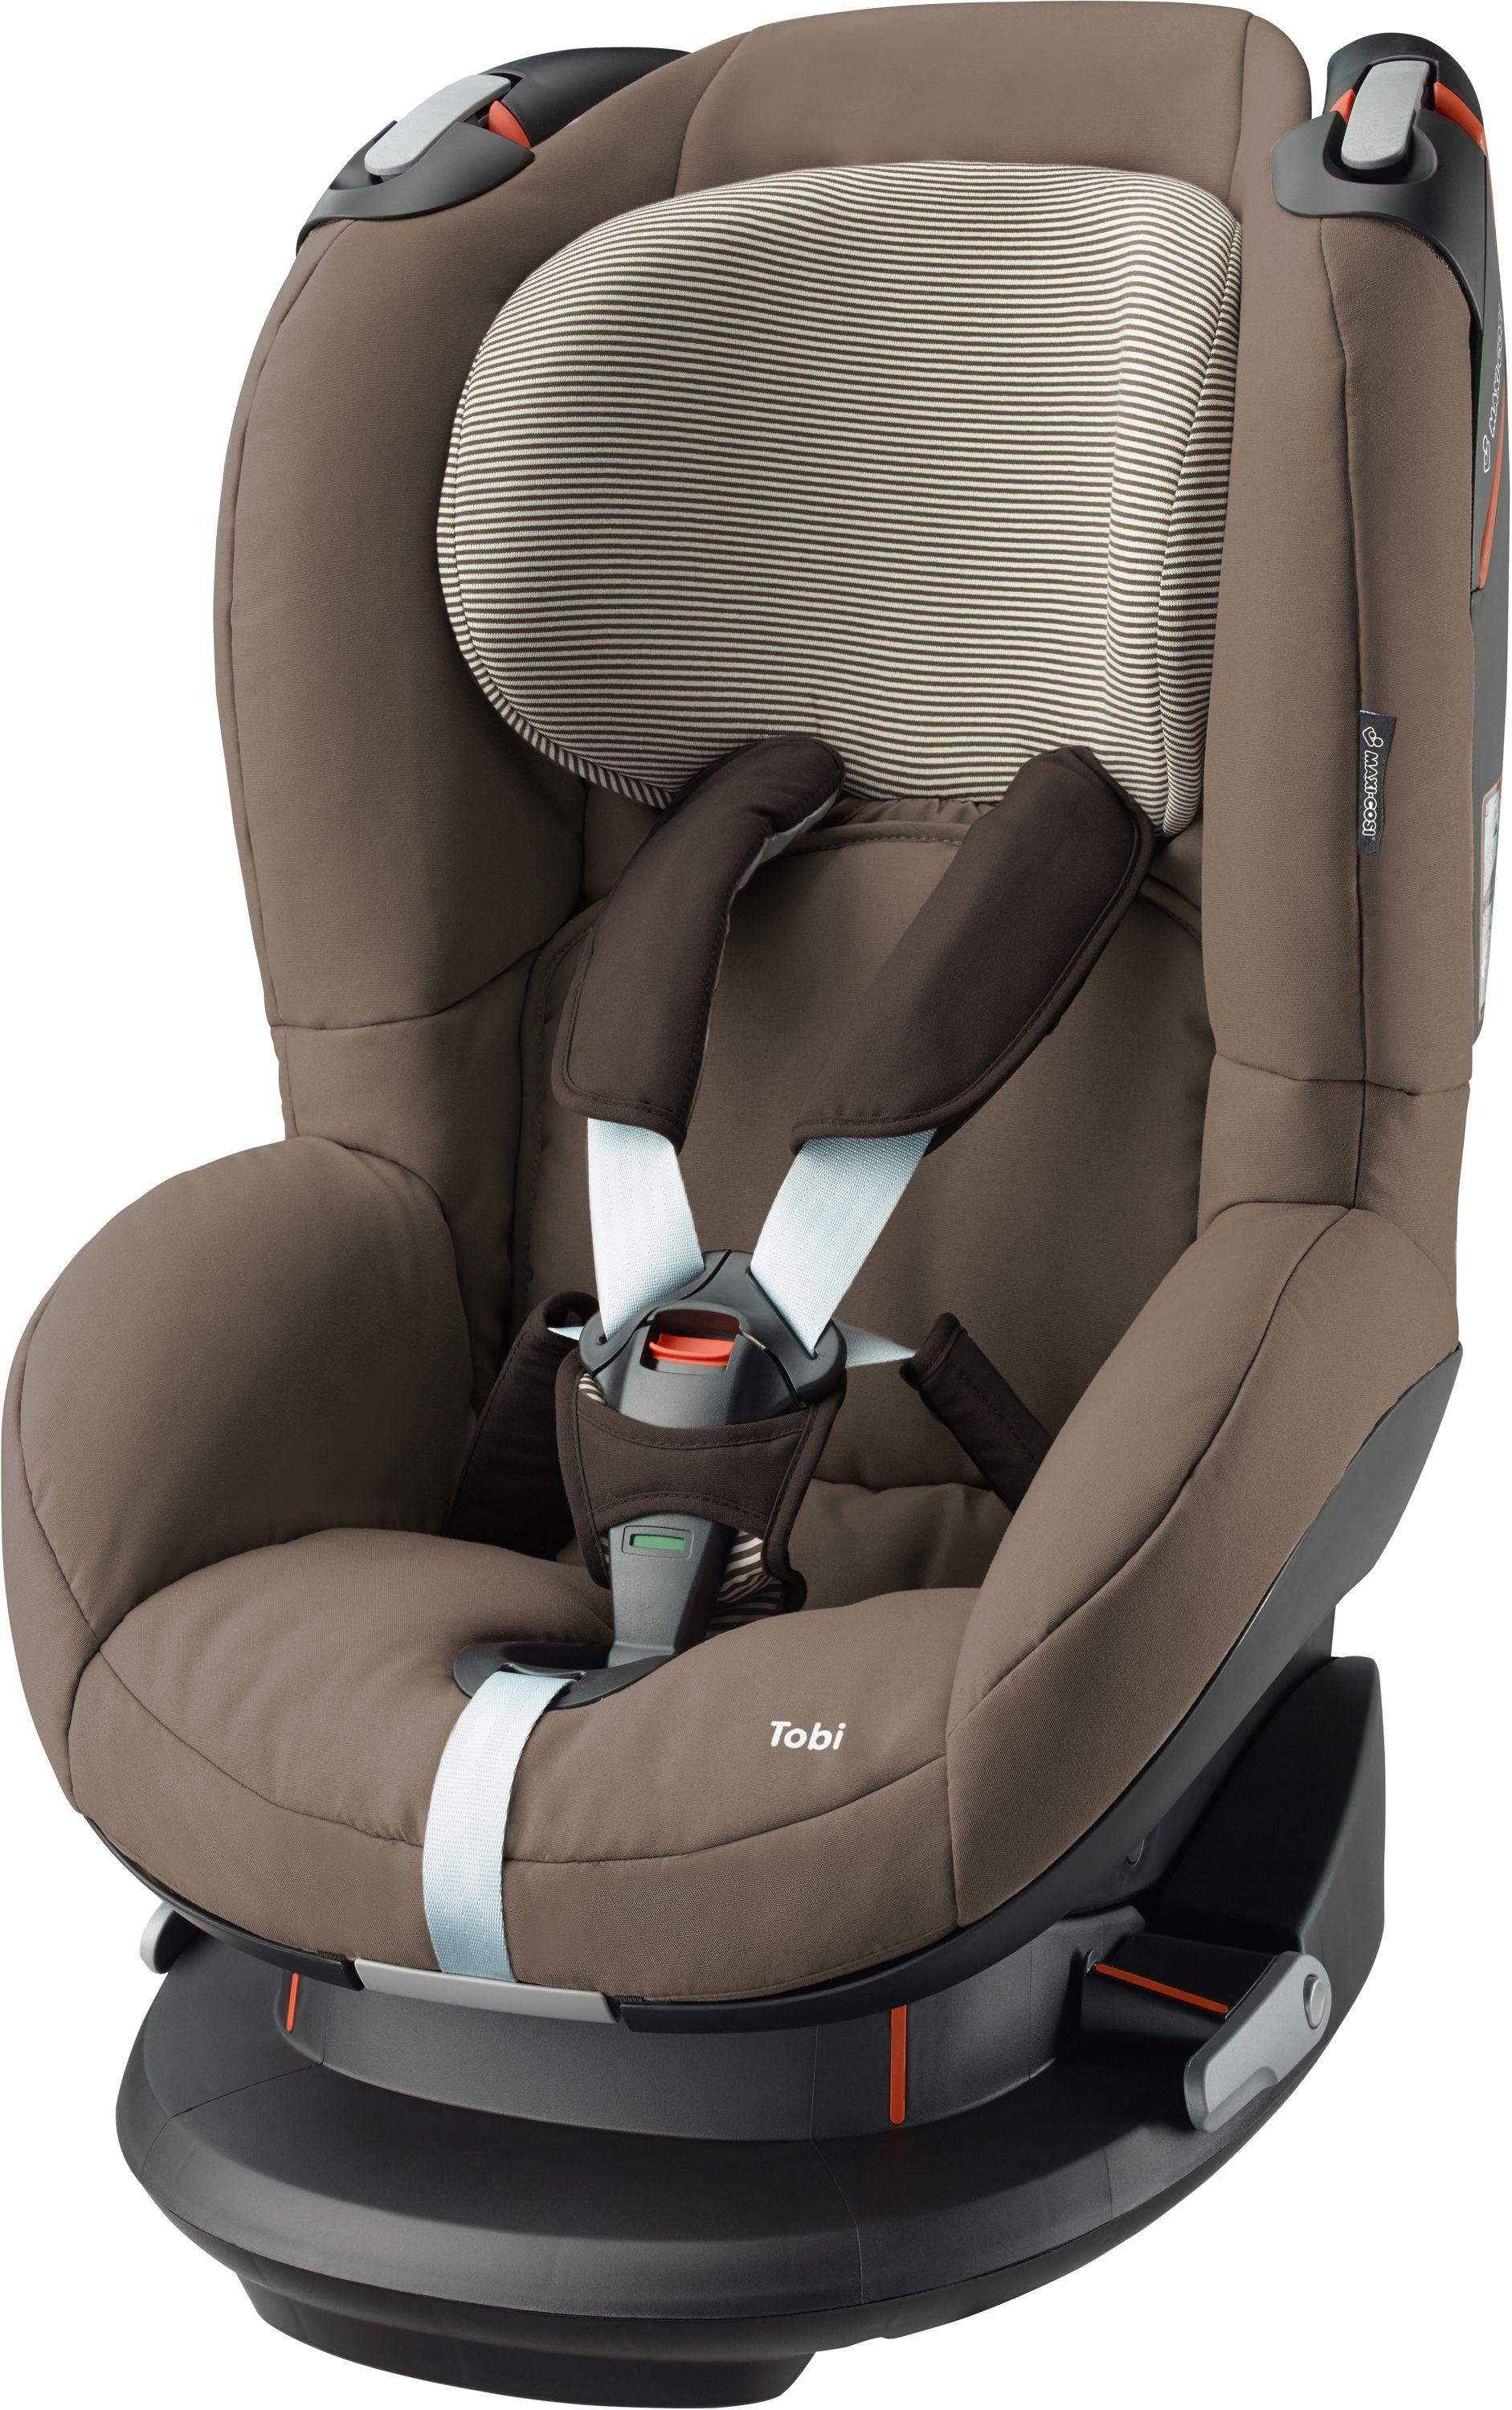 maxi cosi tobi group 1 car seat earth brown. Black Bedroom Furniture Sets. Home Design Ideas